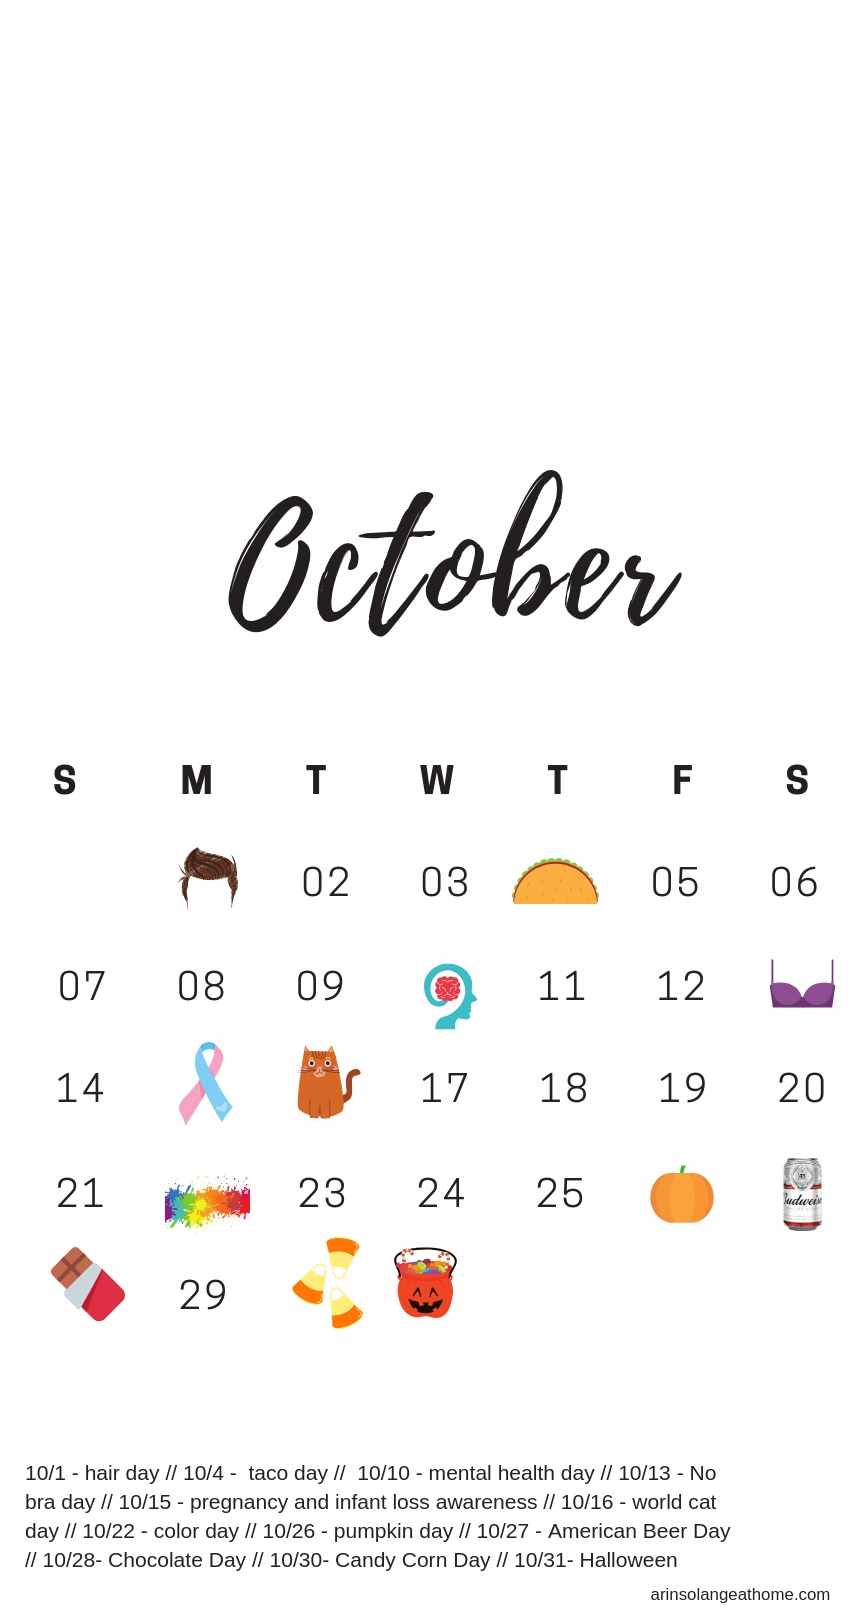 October National Days Calendar - Arinsolangeathome